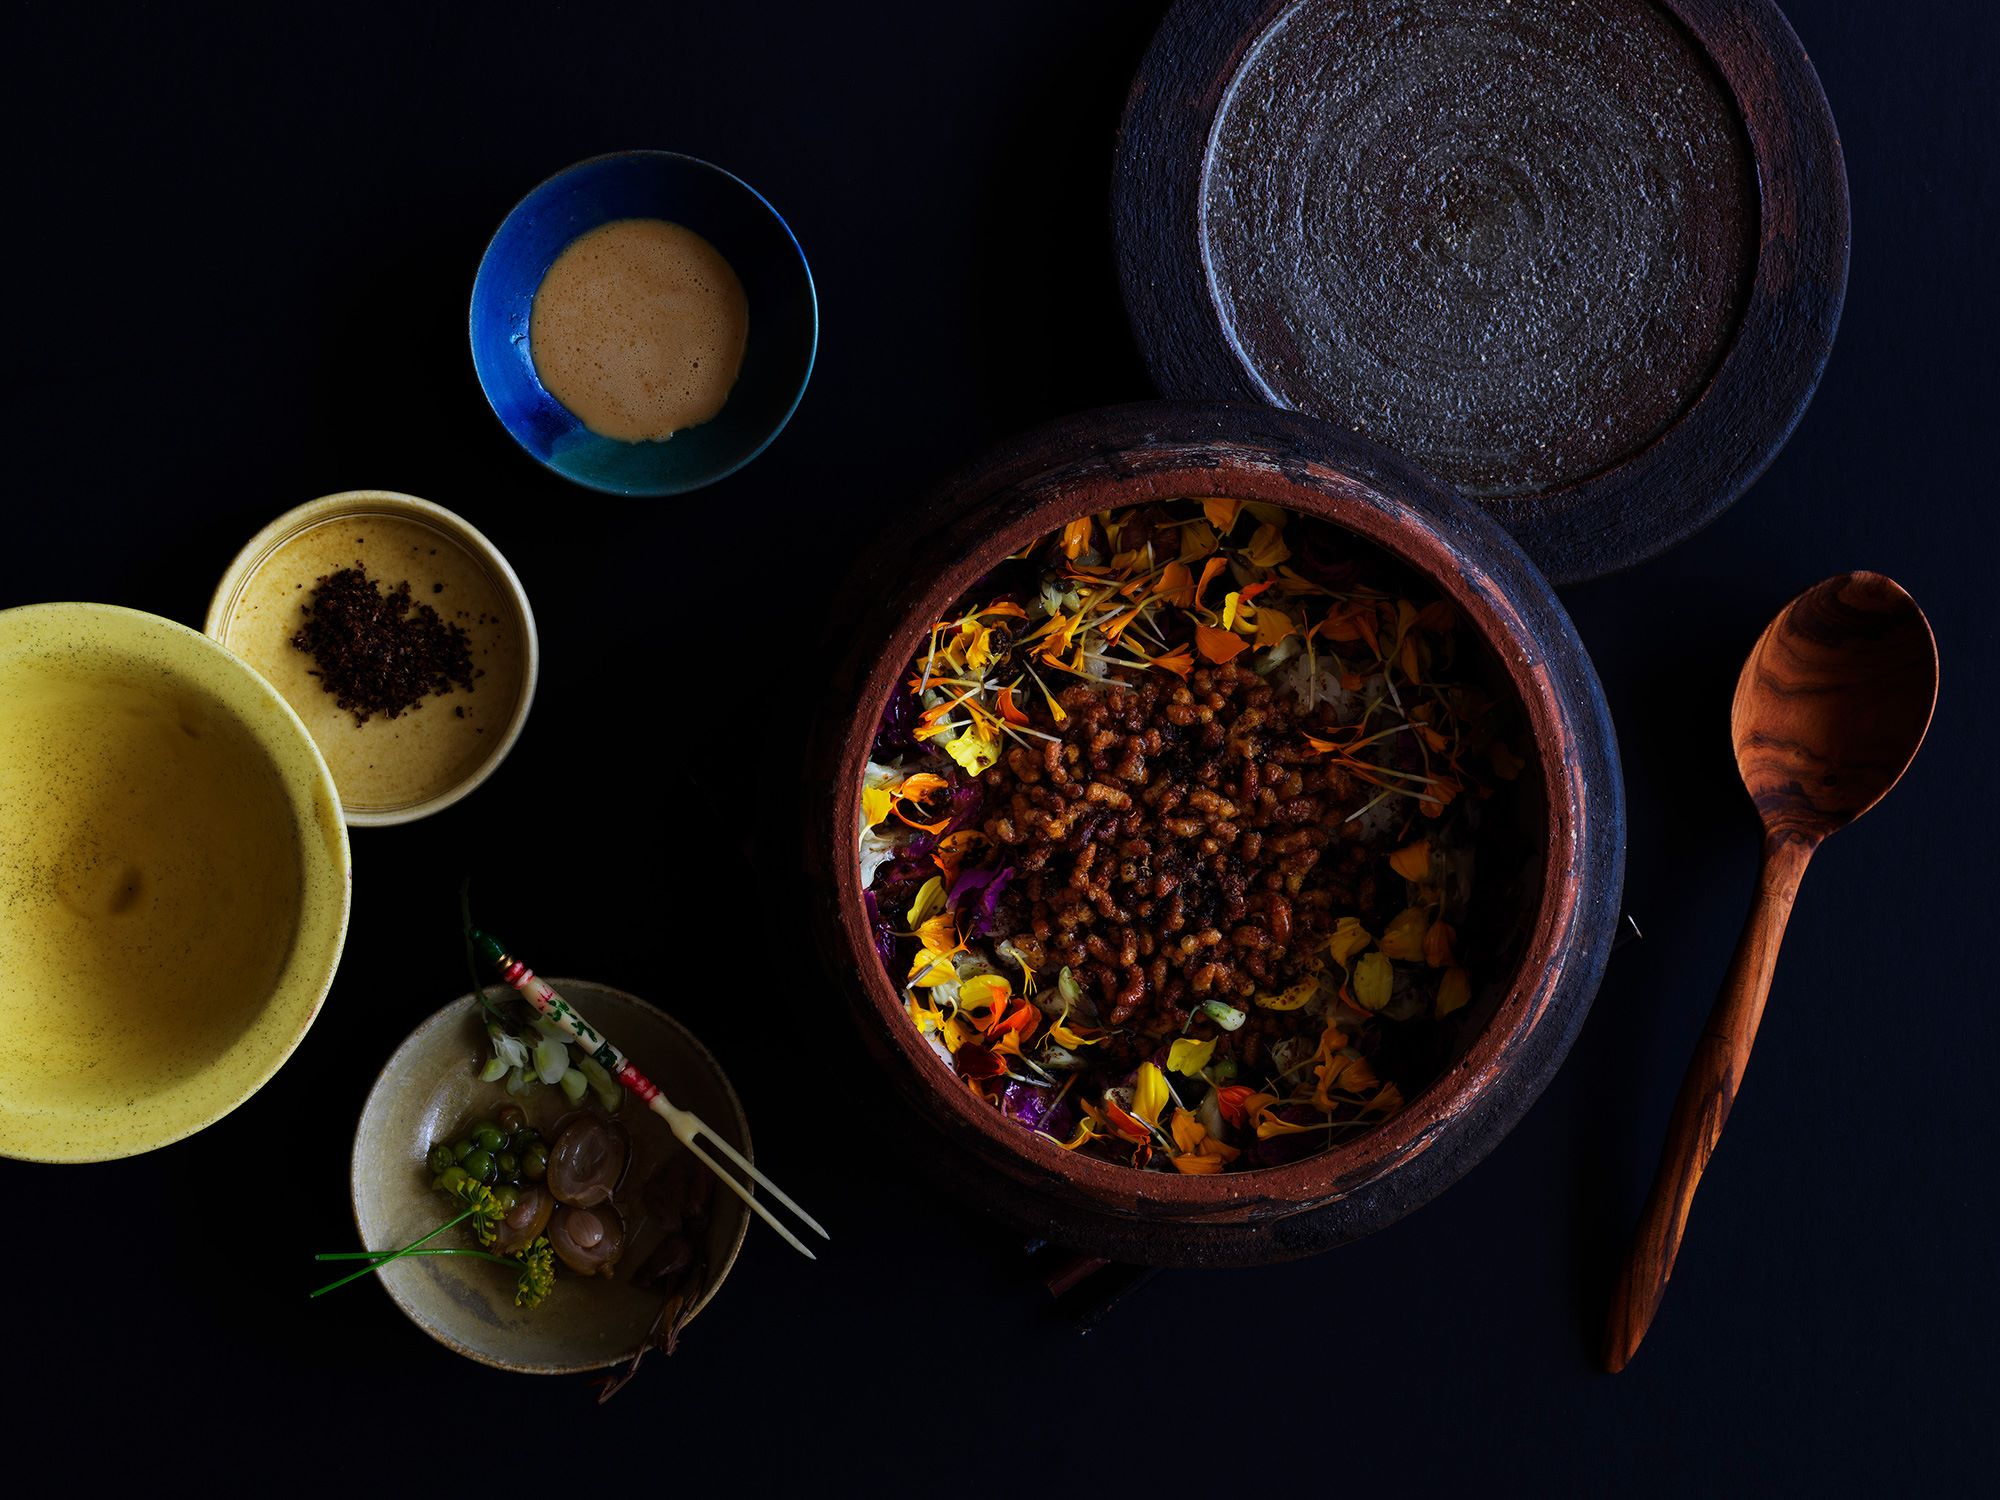 Many of the customers express the bee larvae claypot rice dish as their most impressive dish at INUA. Photography Jason Loucas